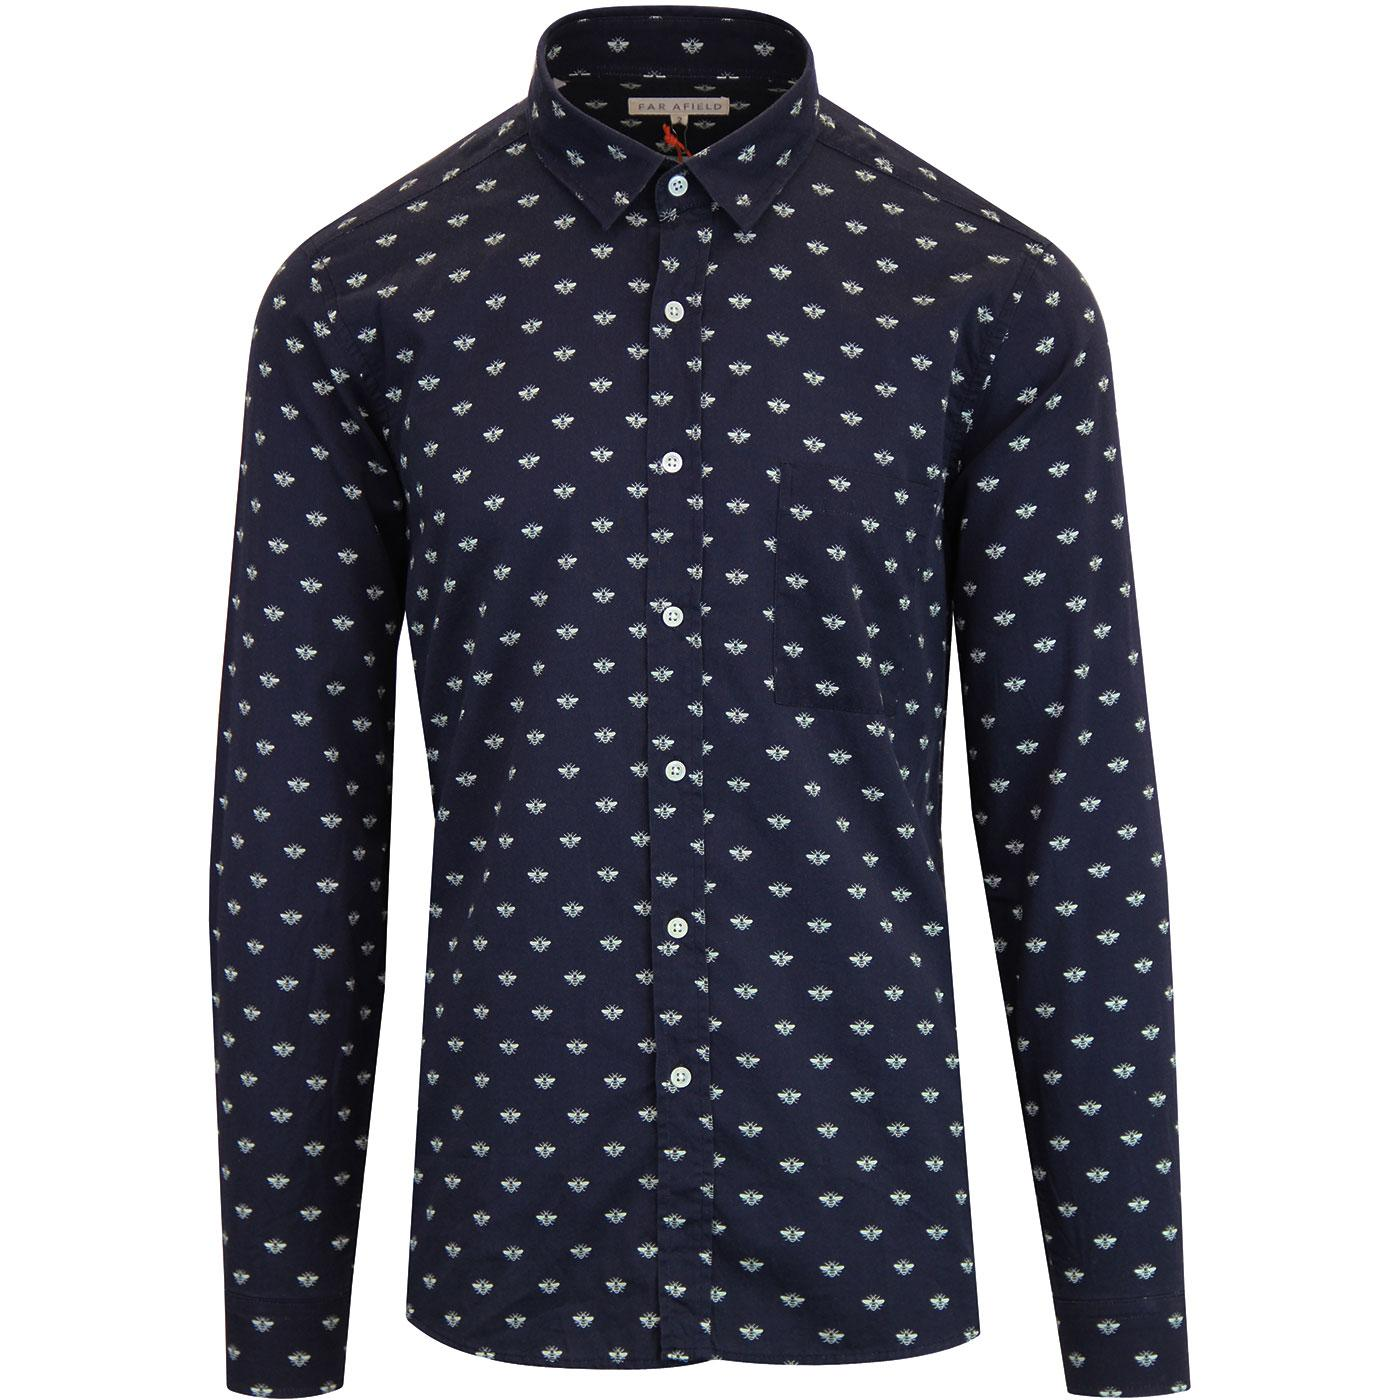 Cognito FAR AFIELD Manchester Worker Bee Shirt